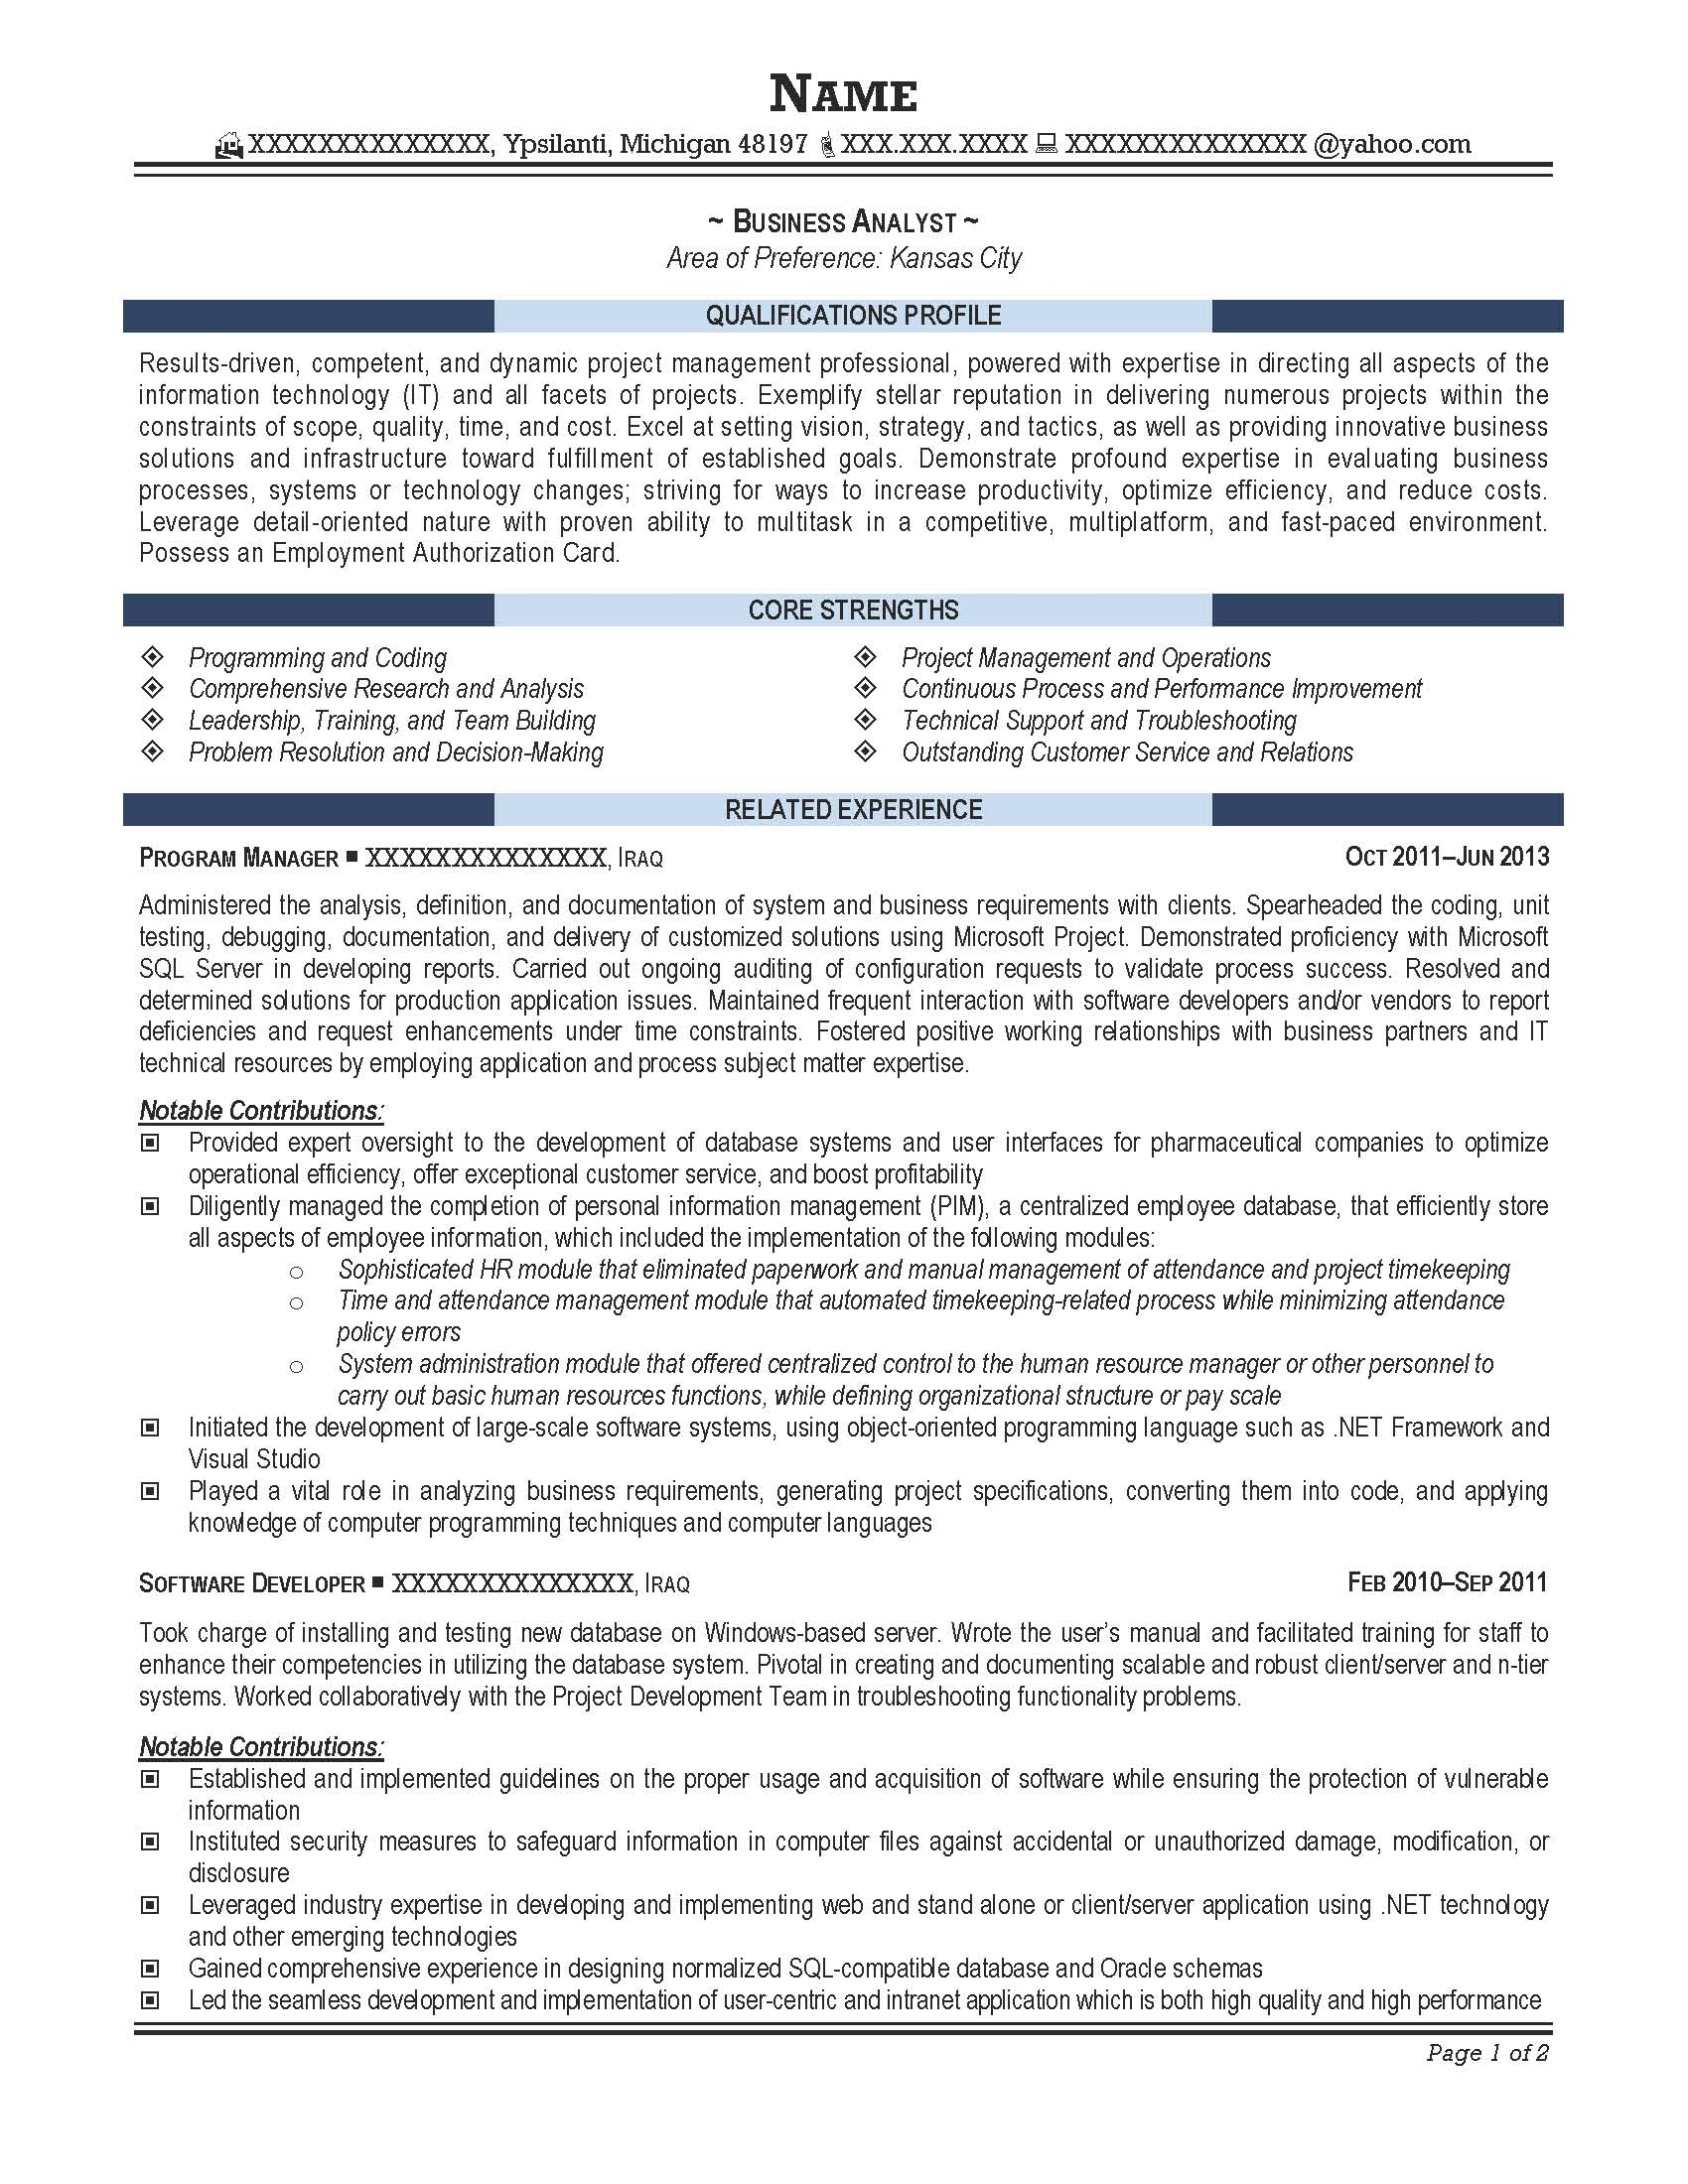 business analyst resume sample after 1 sample of business analyst resume - Professional Business Resume Template